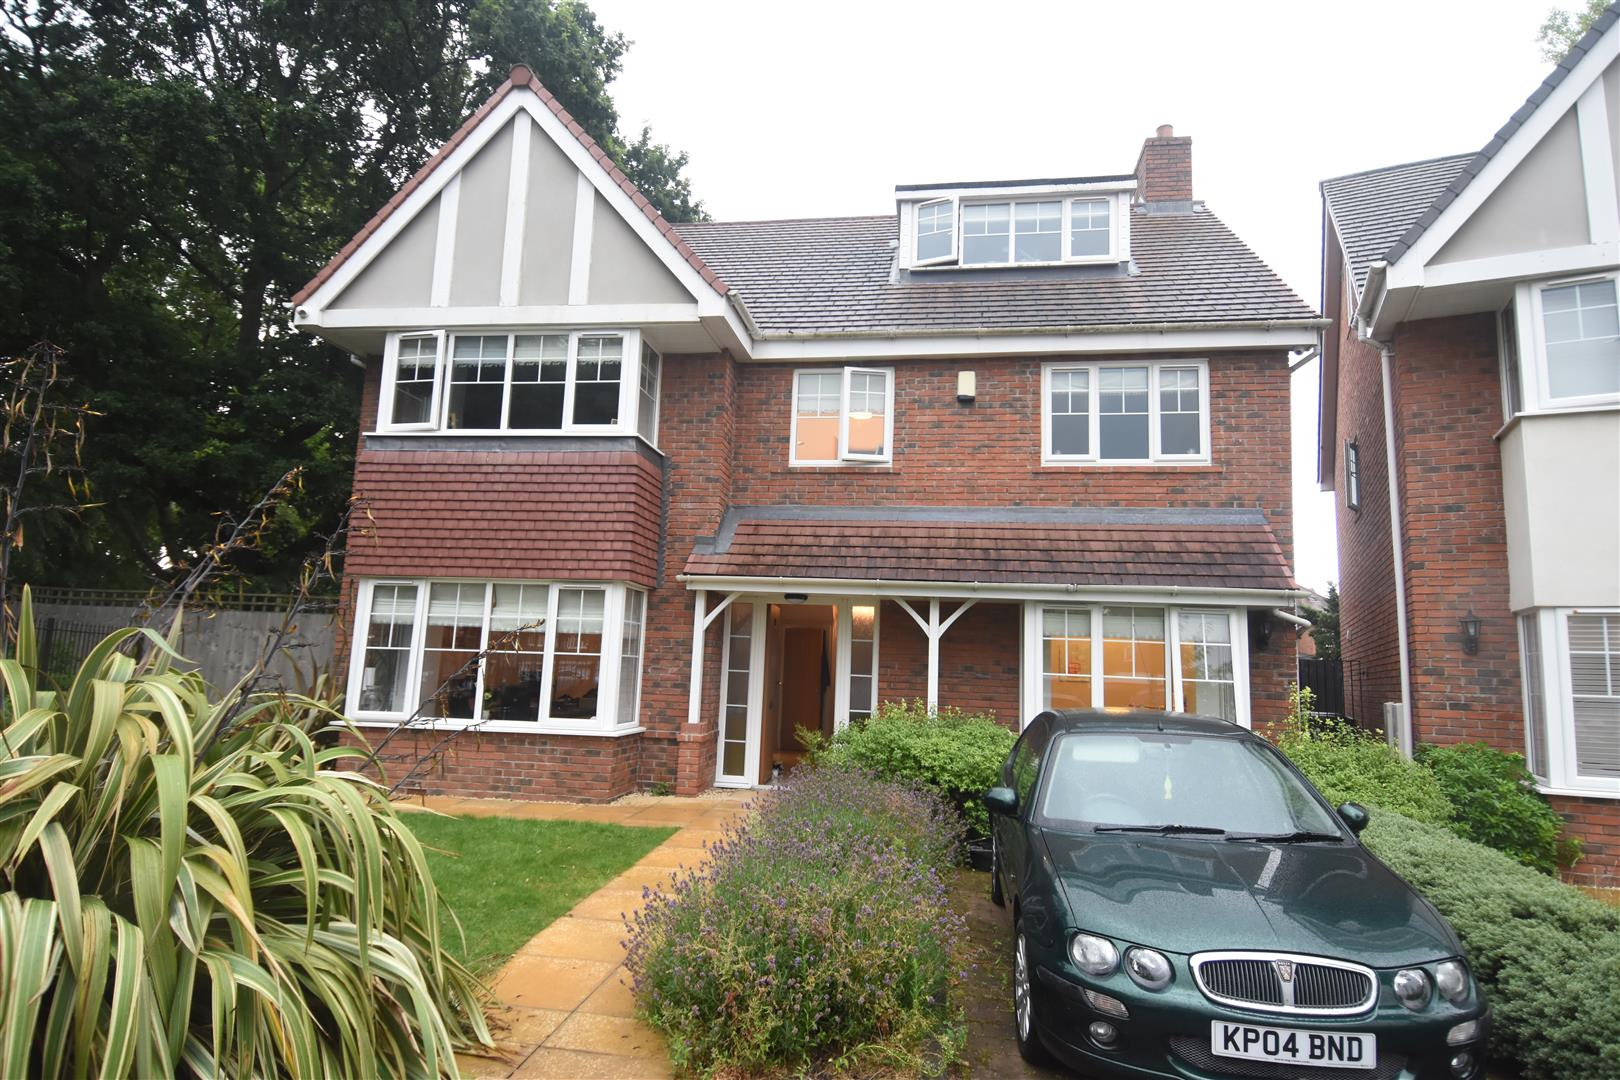 5 bed house for sale in Hodge Hill Common, Birmingham, B36